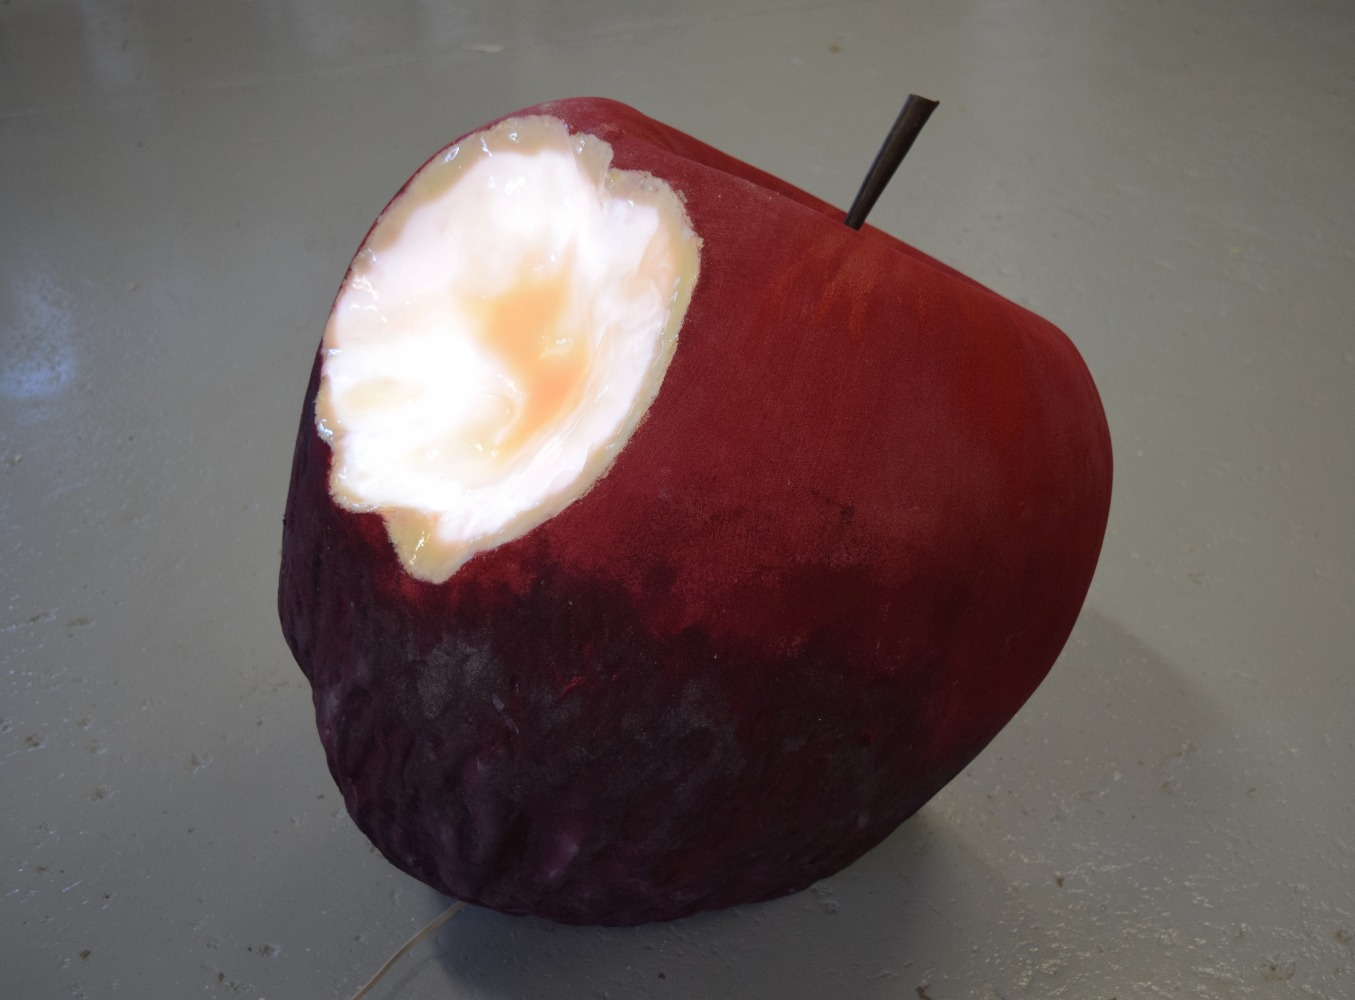 llarge 60cm apple with glowing bite